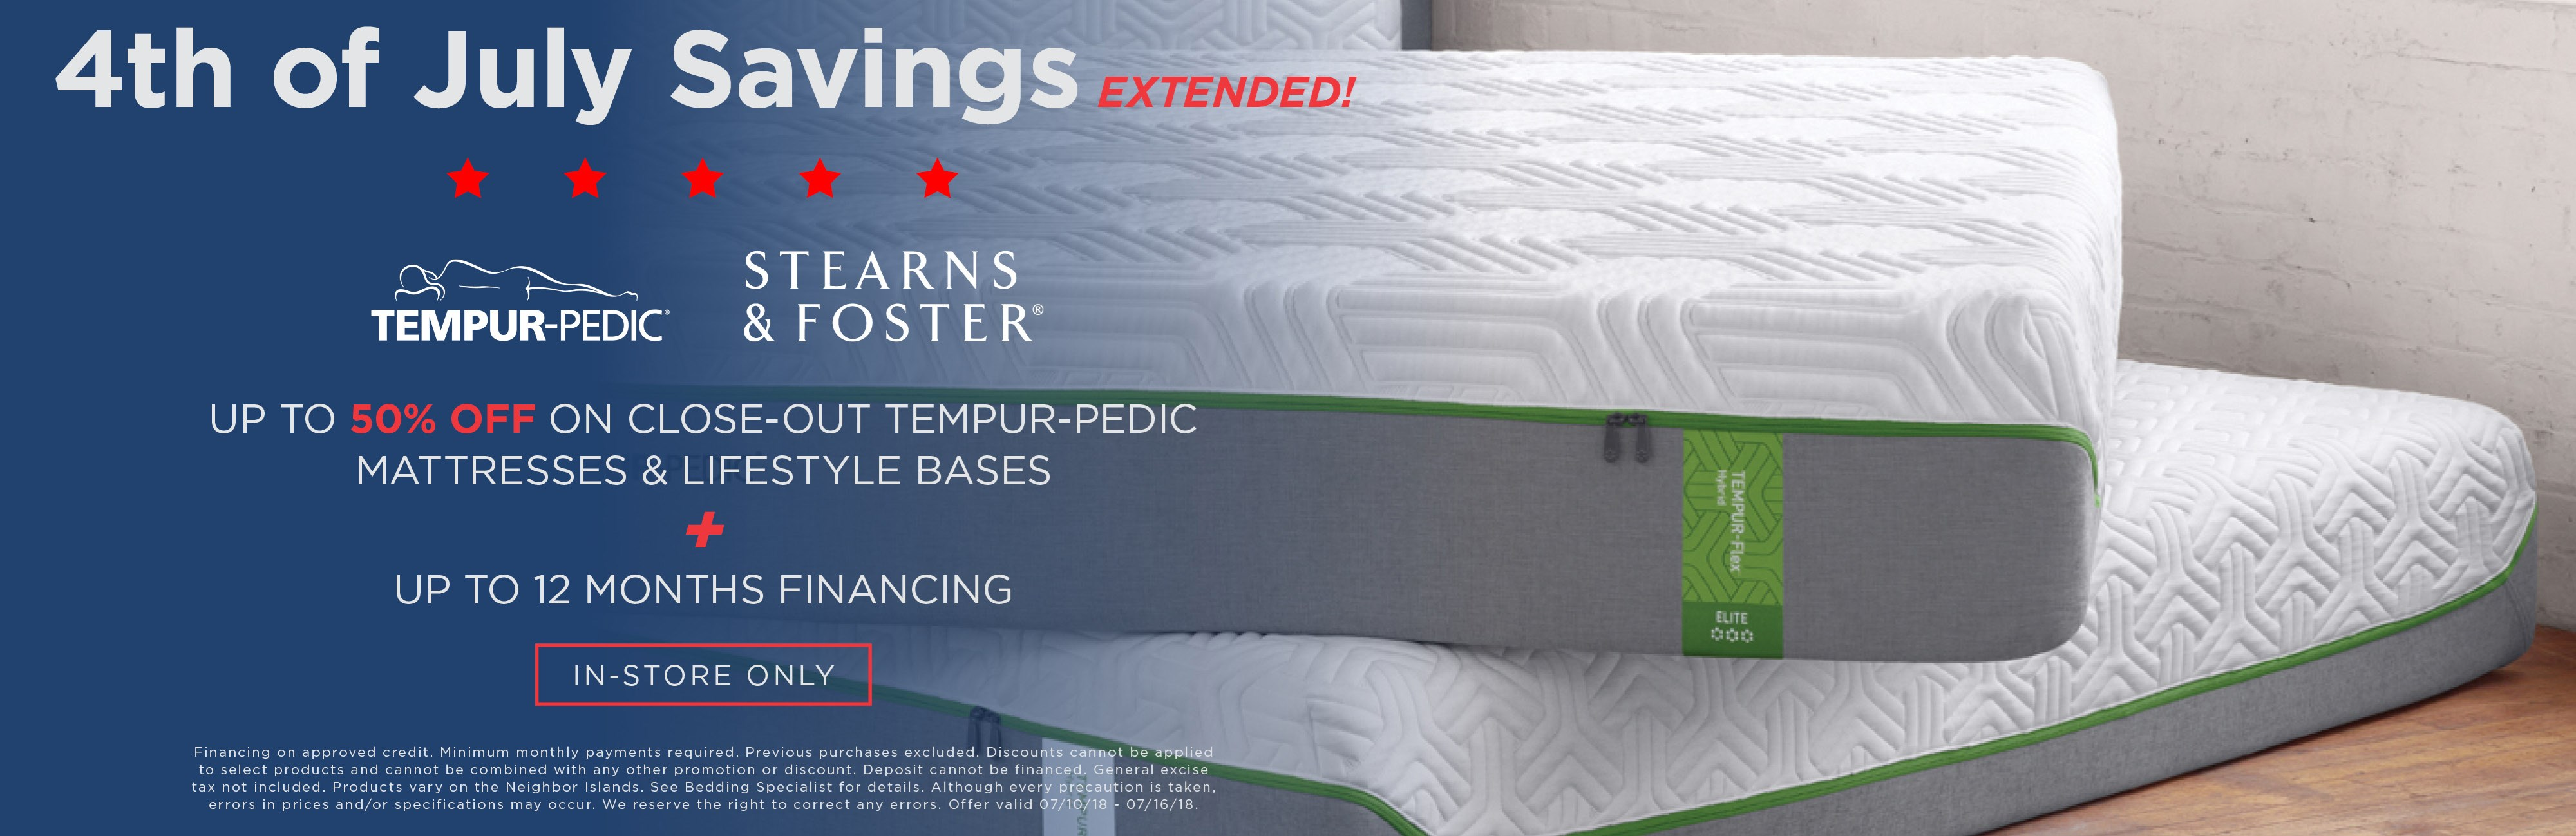 Extended July 4th sale; up to 50% off on closeout TempurPedic mattresses and lifestyle bases, and up to 12 months financing. See store for details.